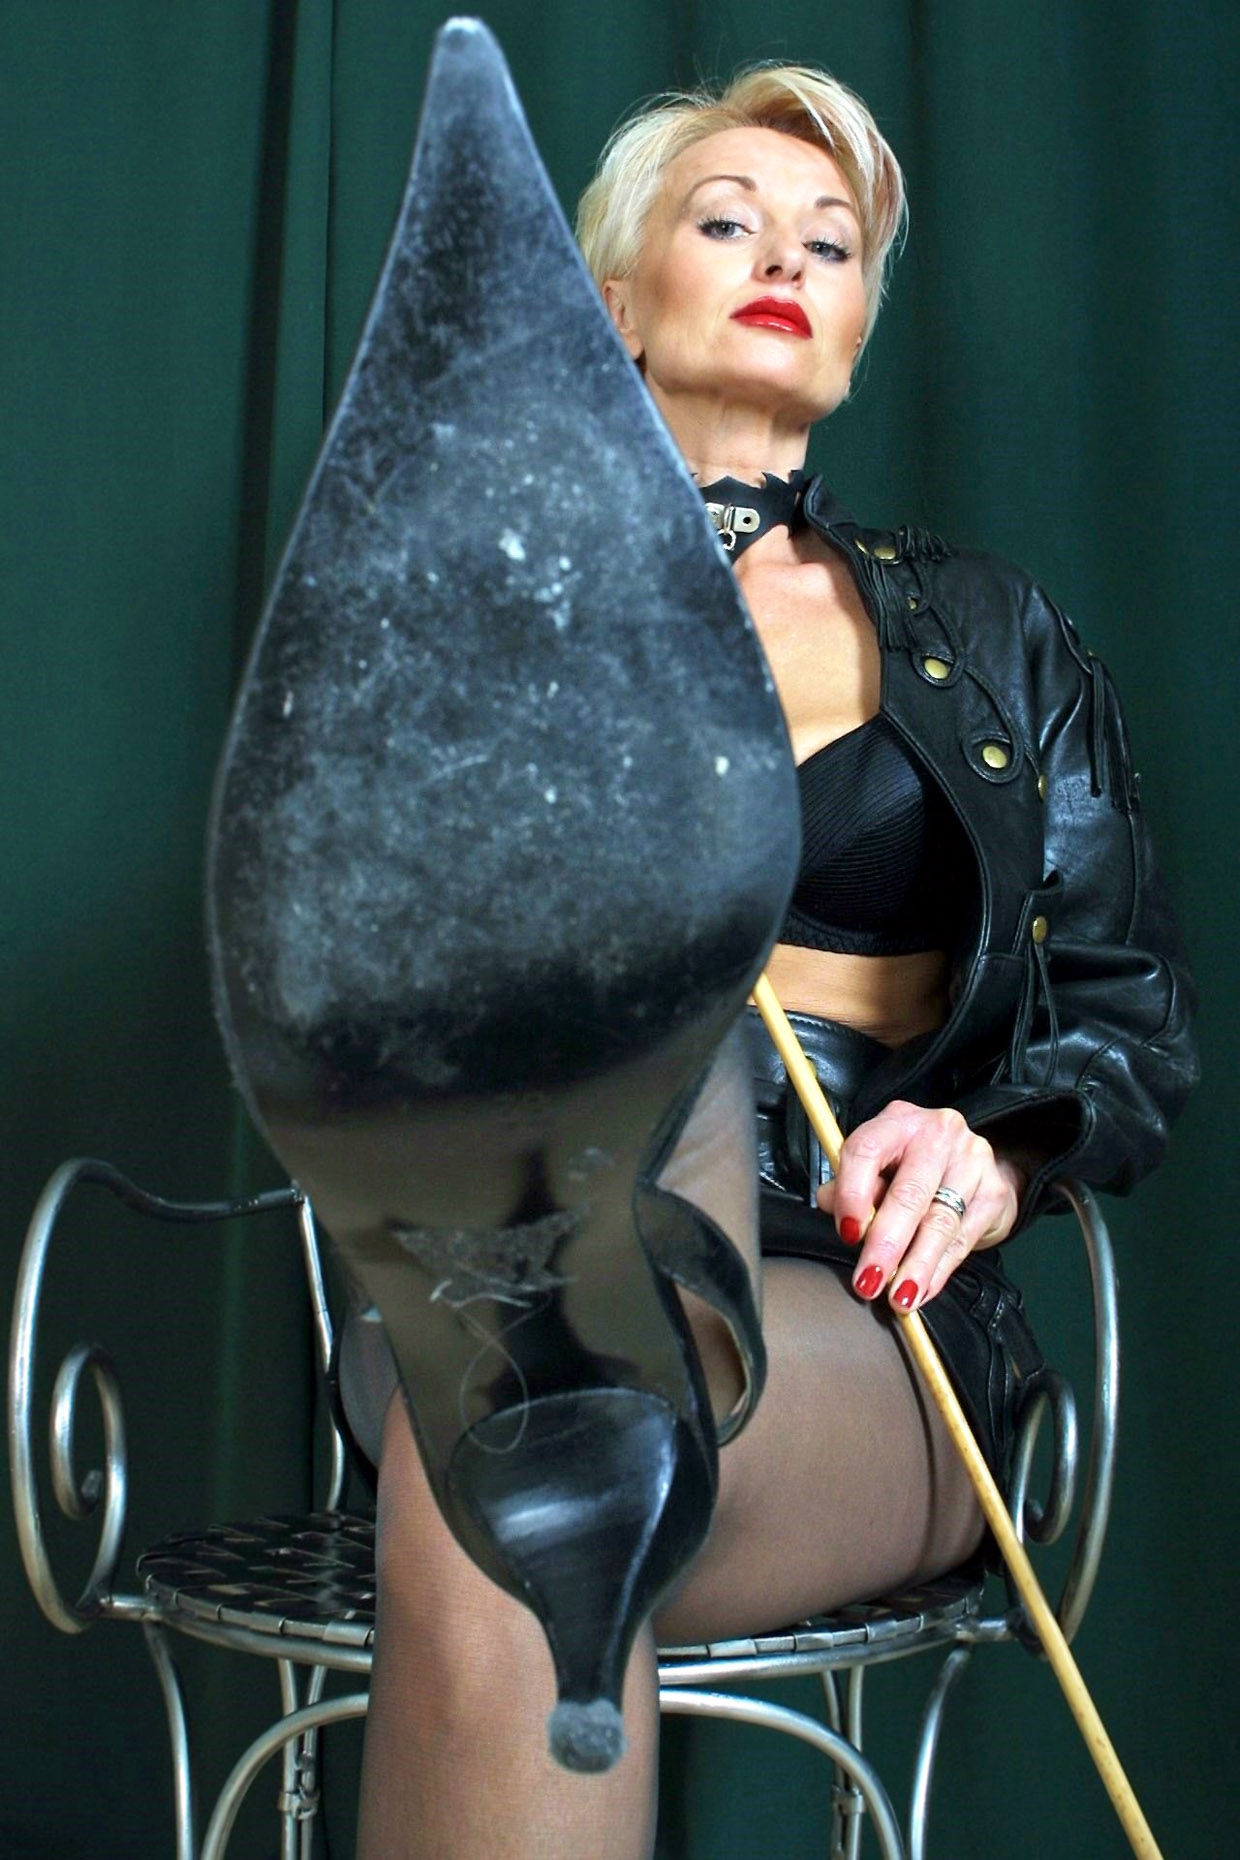 madura bdsm mistress pictures